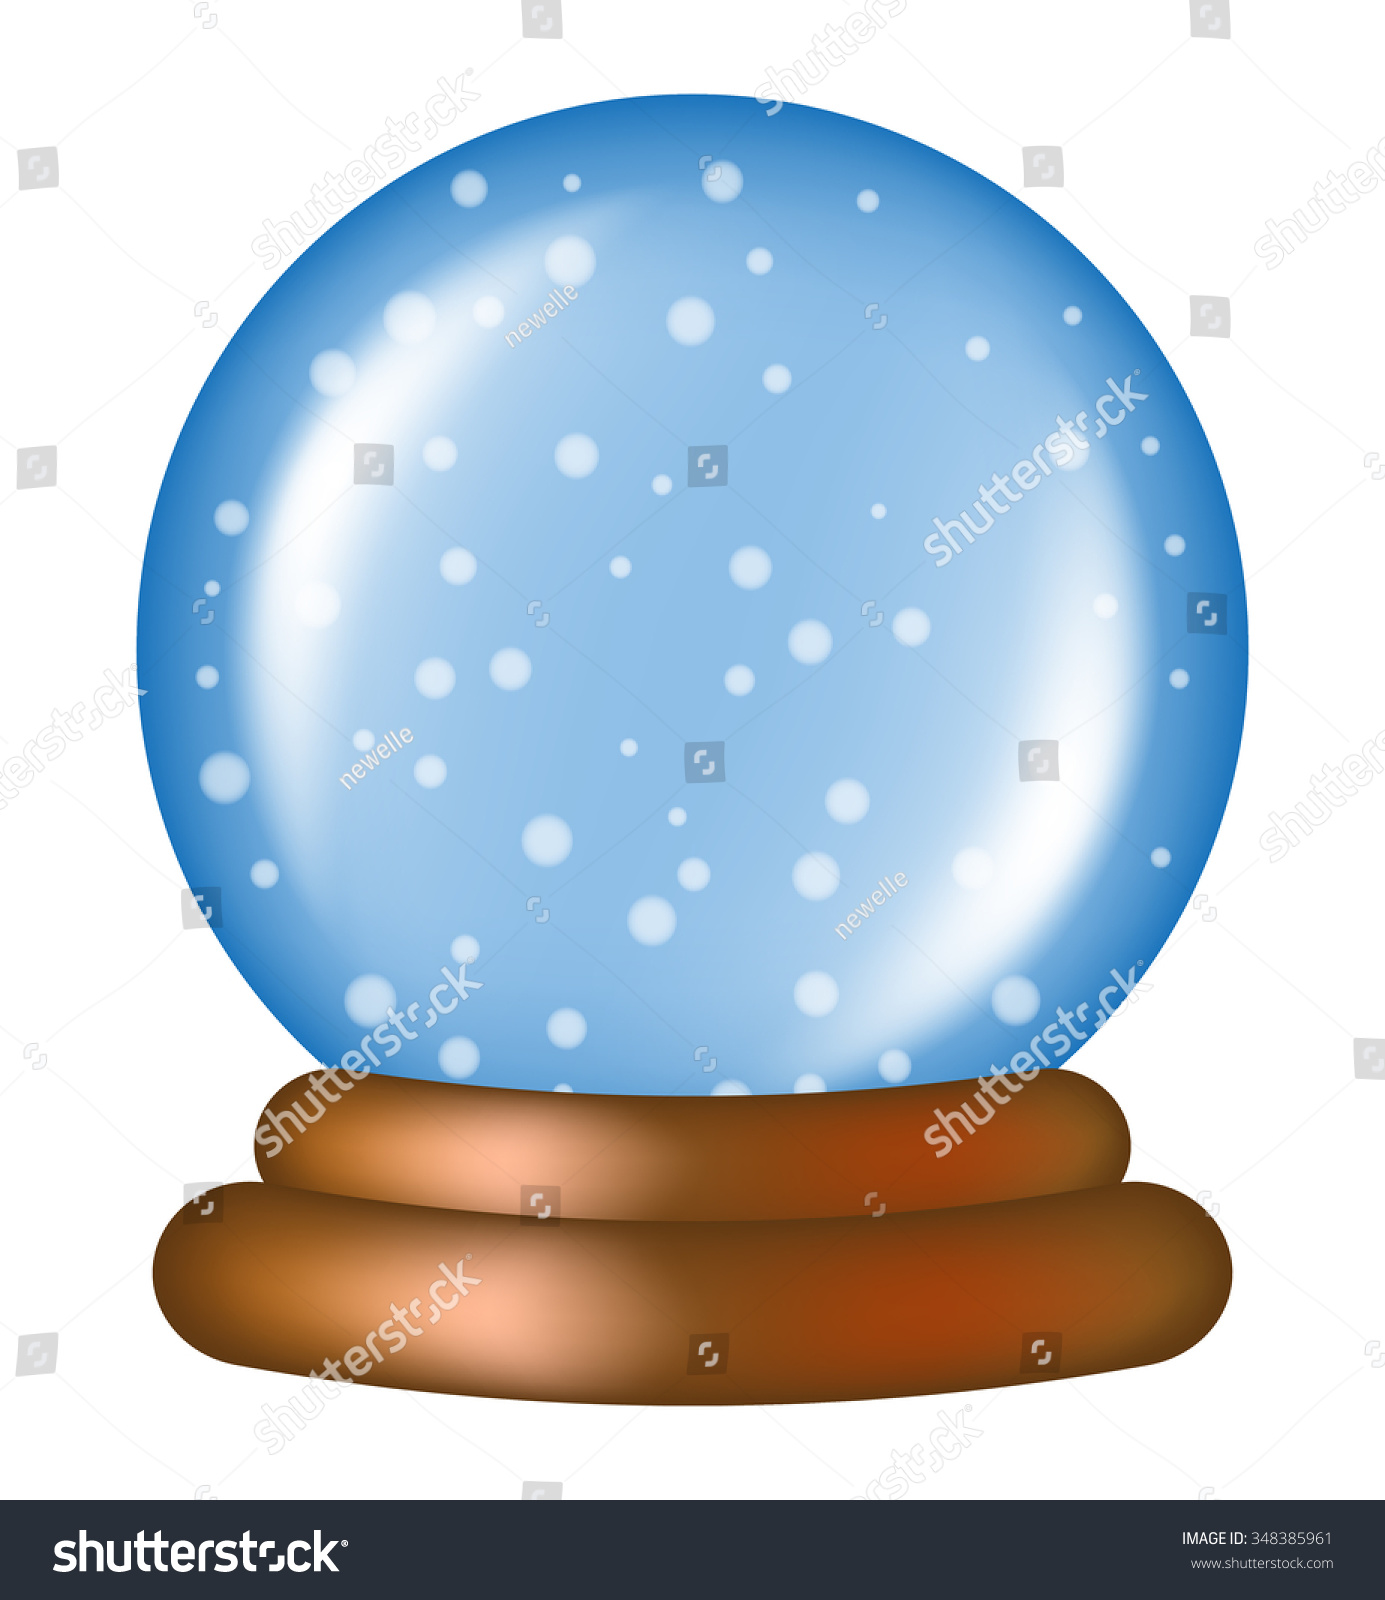 christmas snow globe cartoon design icon stock vector 2018 rh shutterstock com snowman snow globe clipart snow globe clipart free